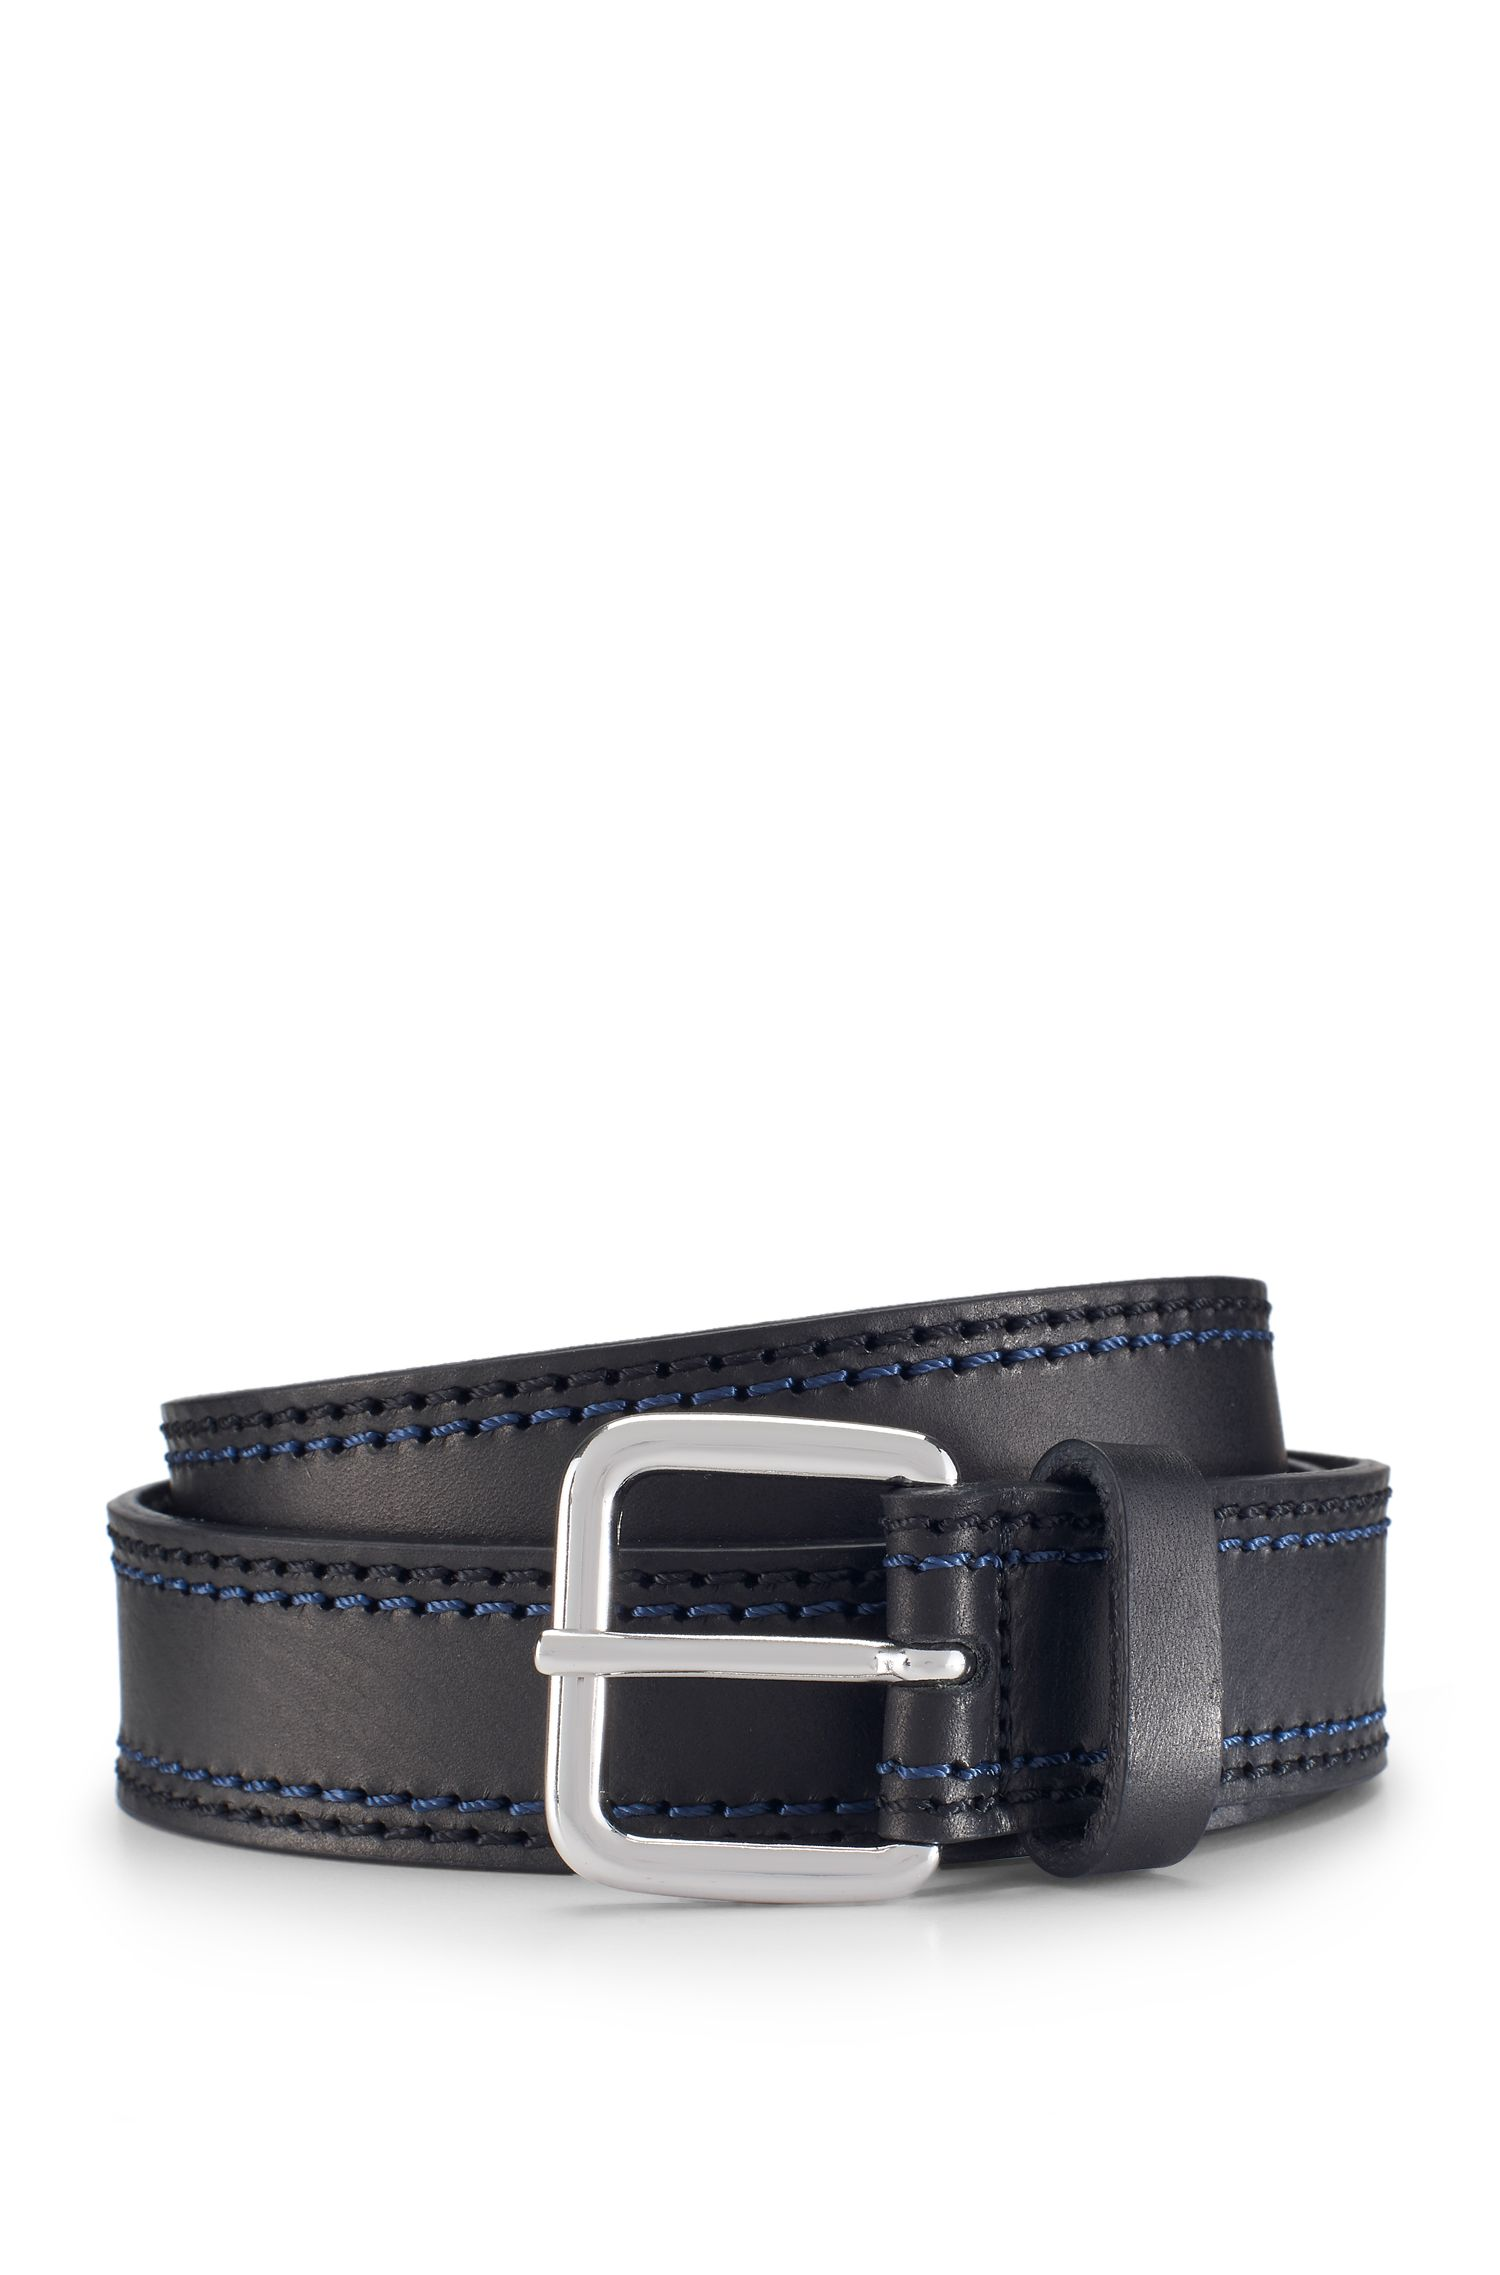 'Giolle' | Stitched Leather Belt